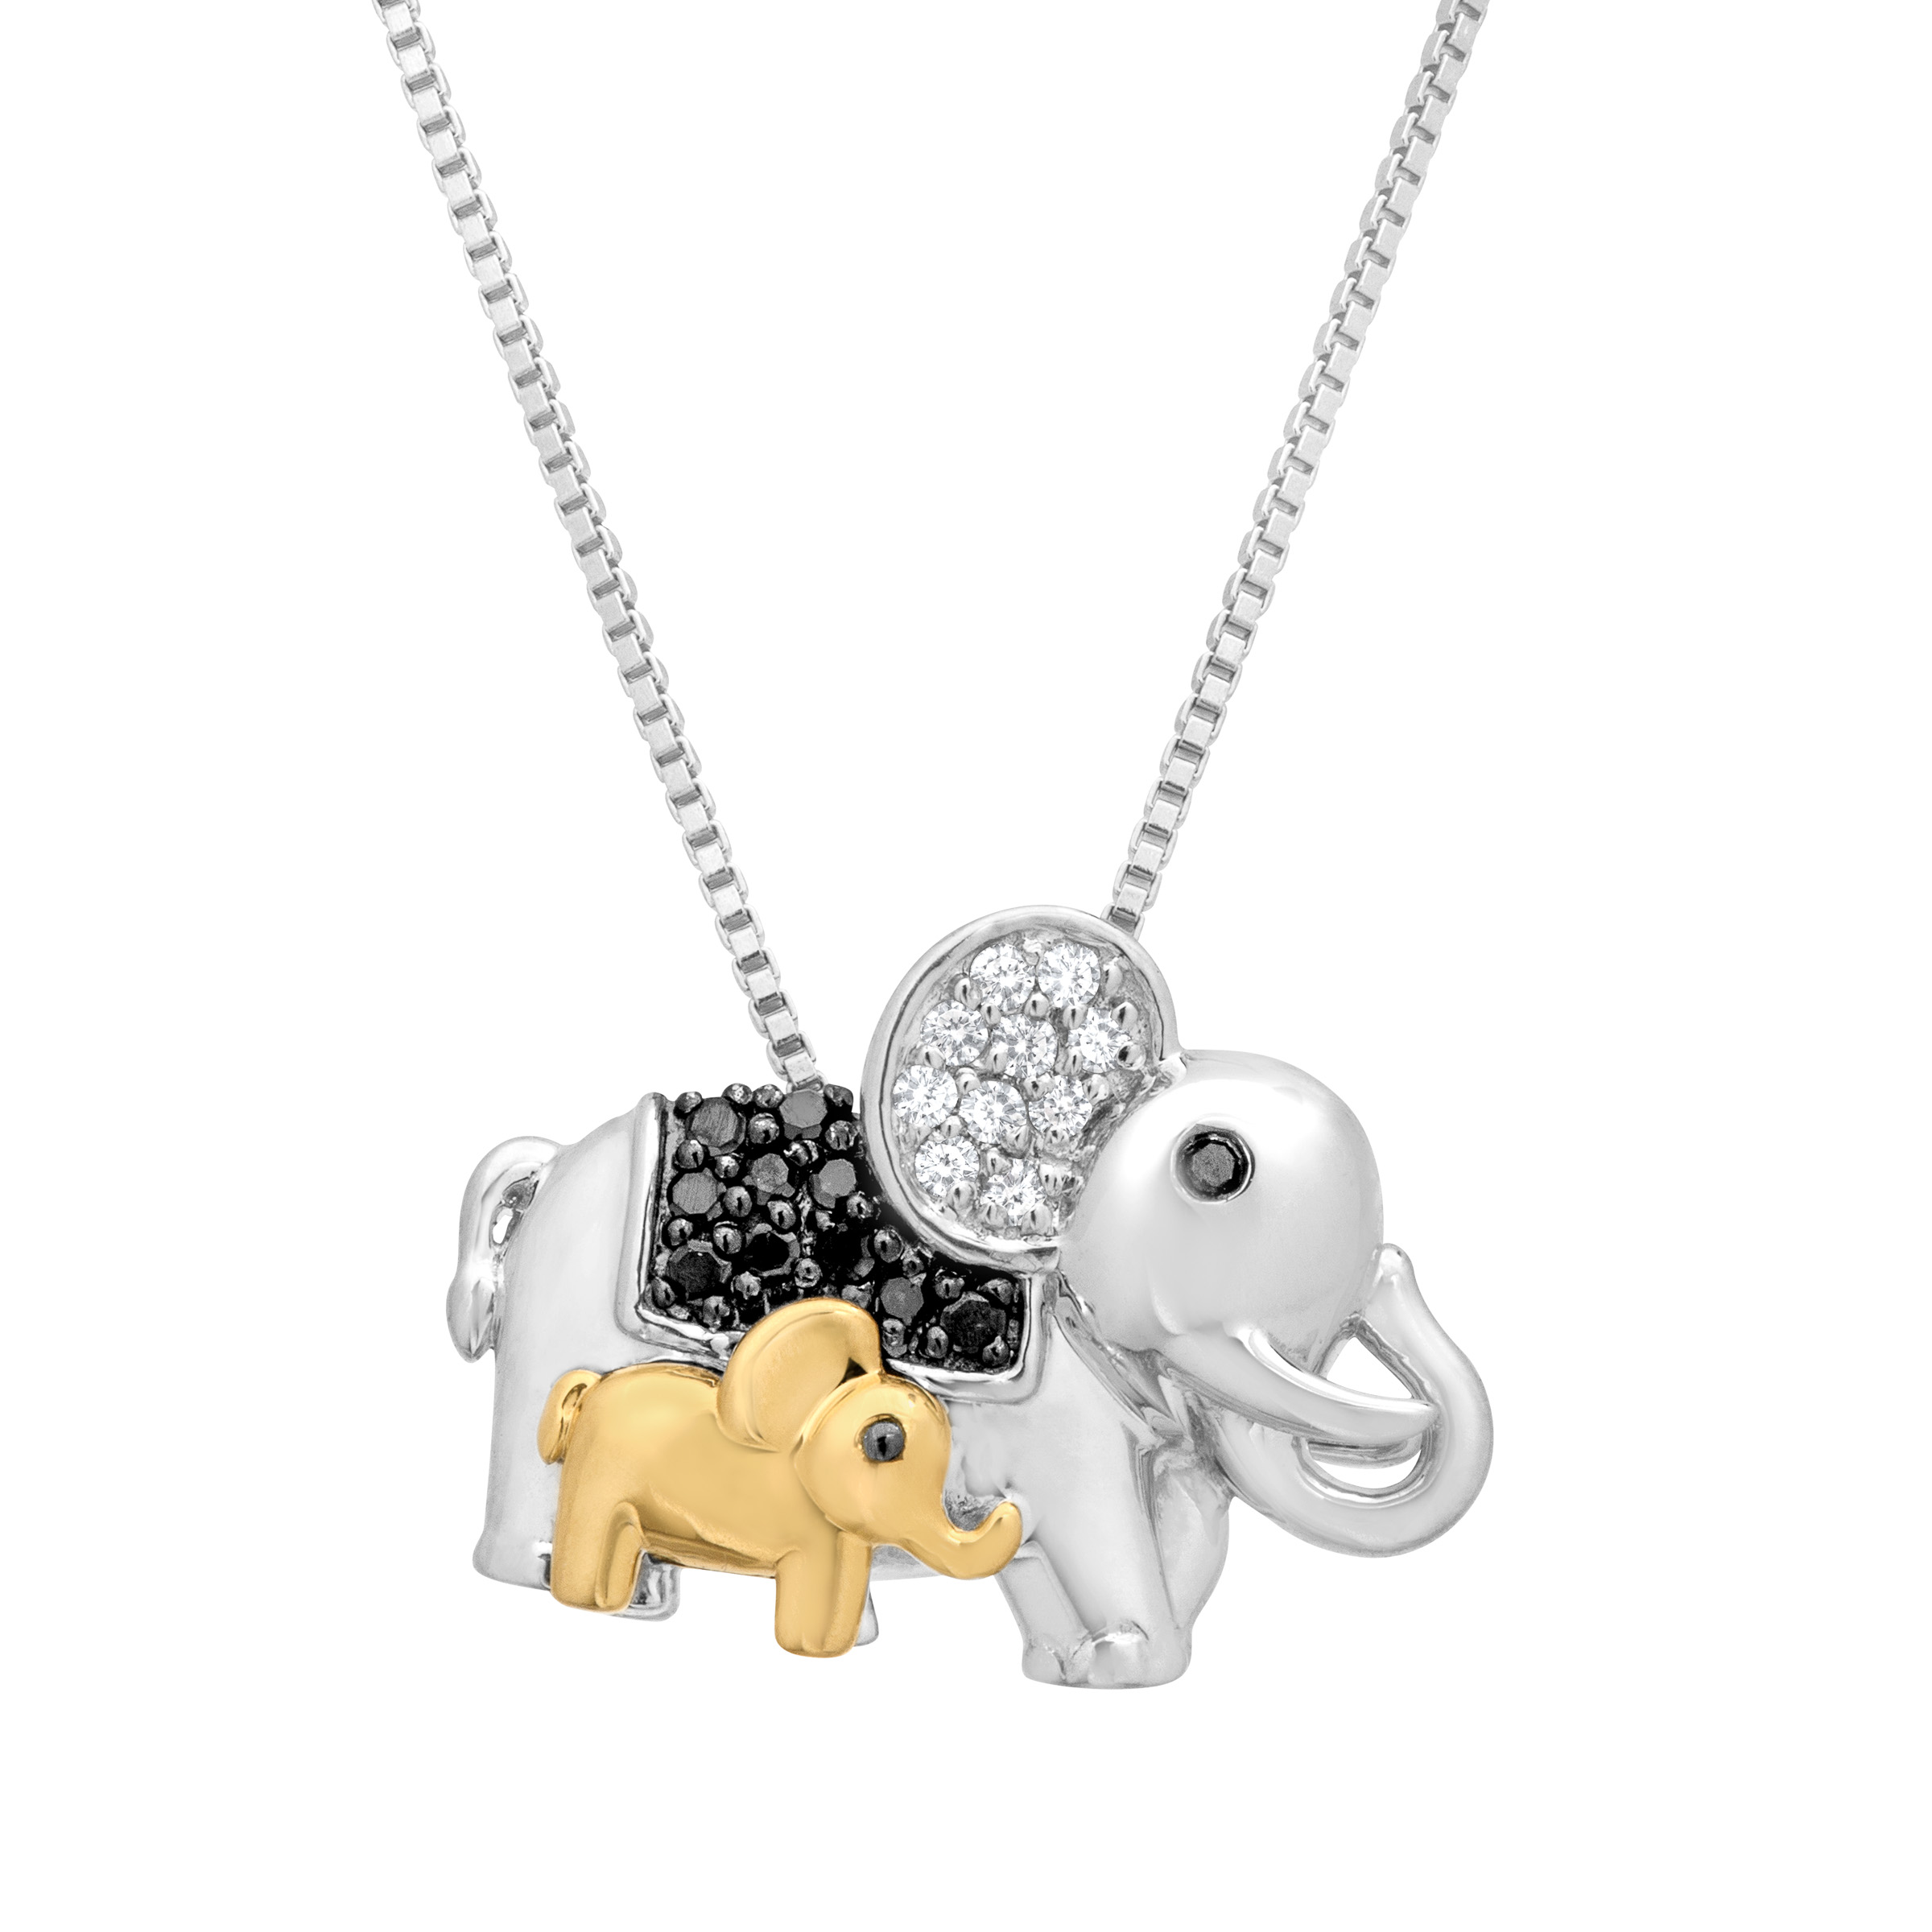 NO BRAND 1/6 ct Black & White Diamond Elephant Pendant Ne...